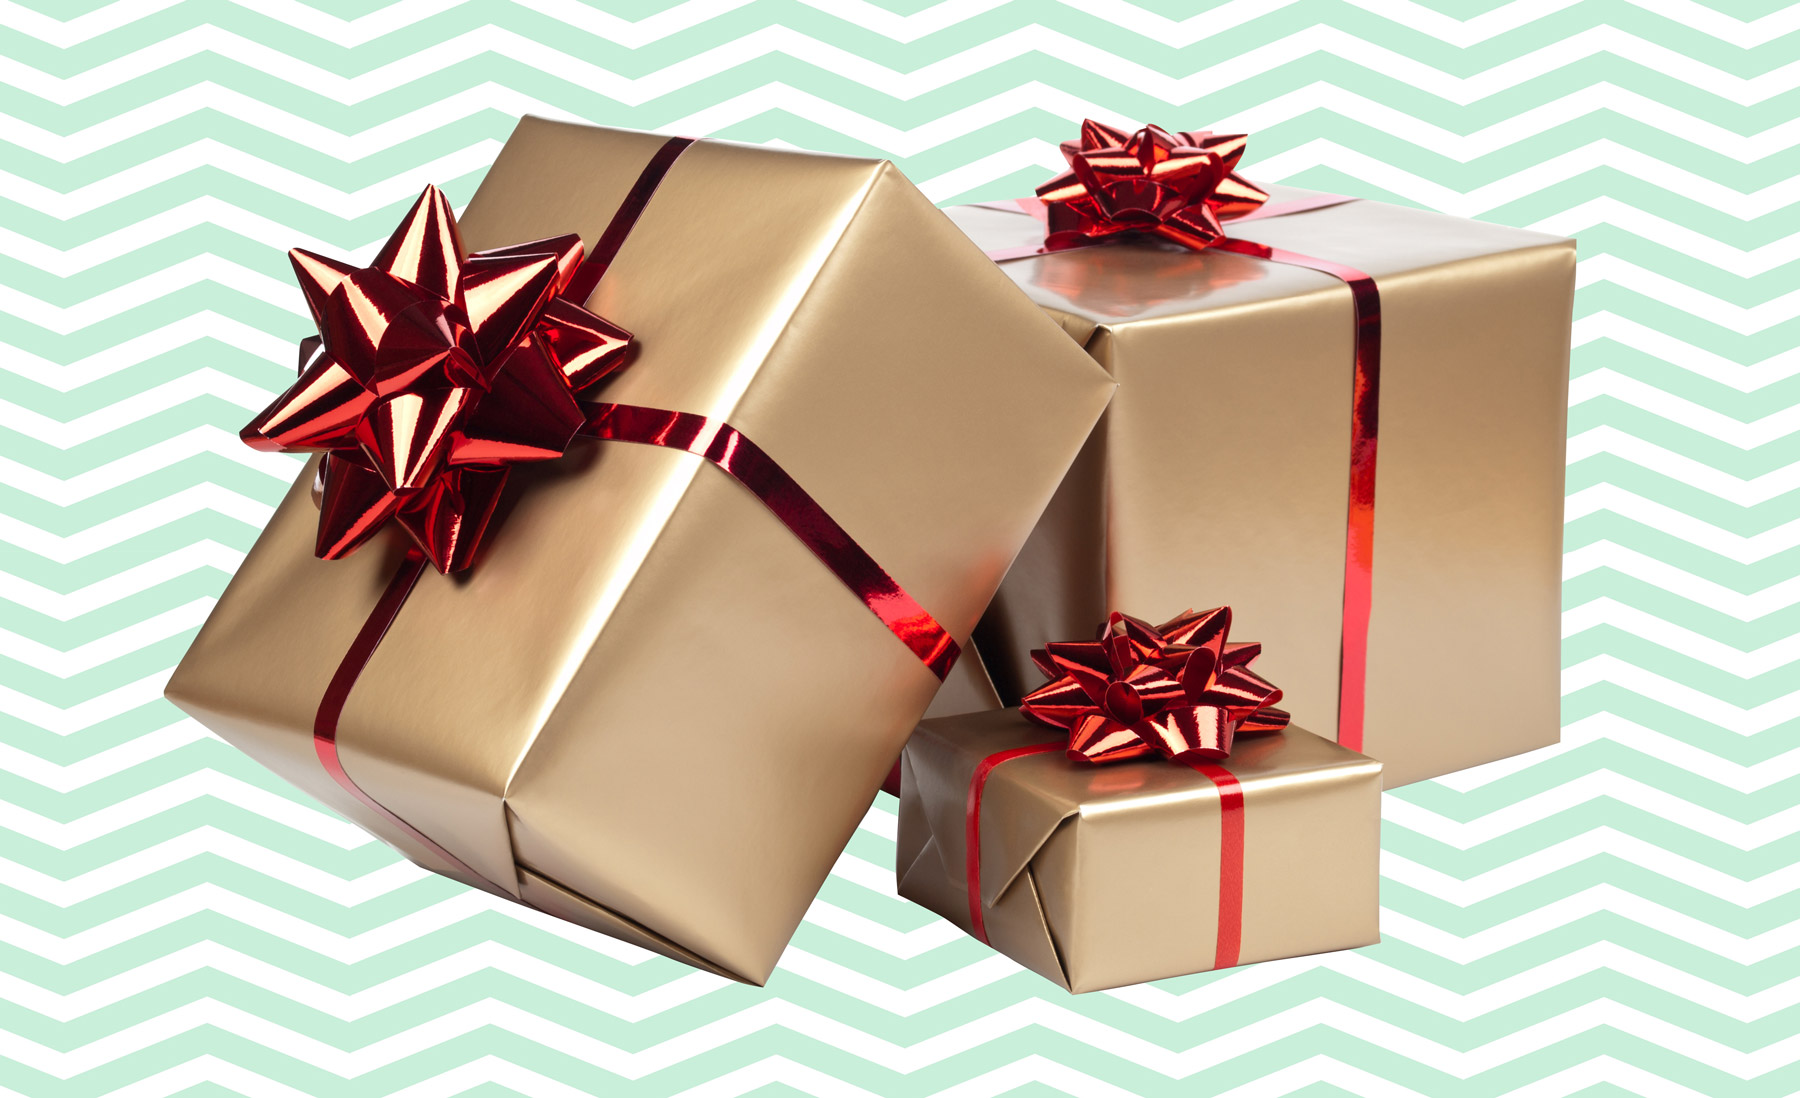 How to wrap a present or gift - guide to wrapping presents and boxes